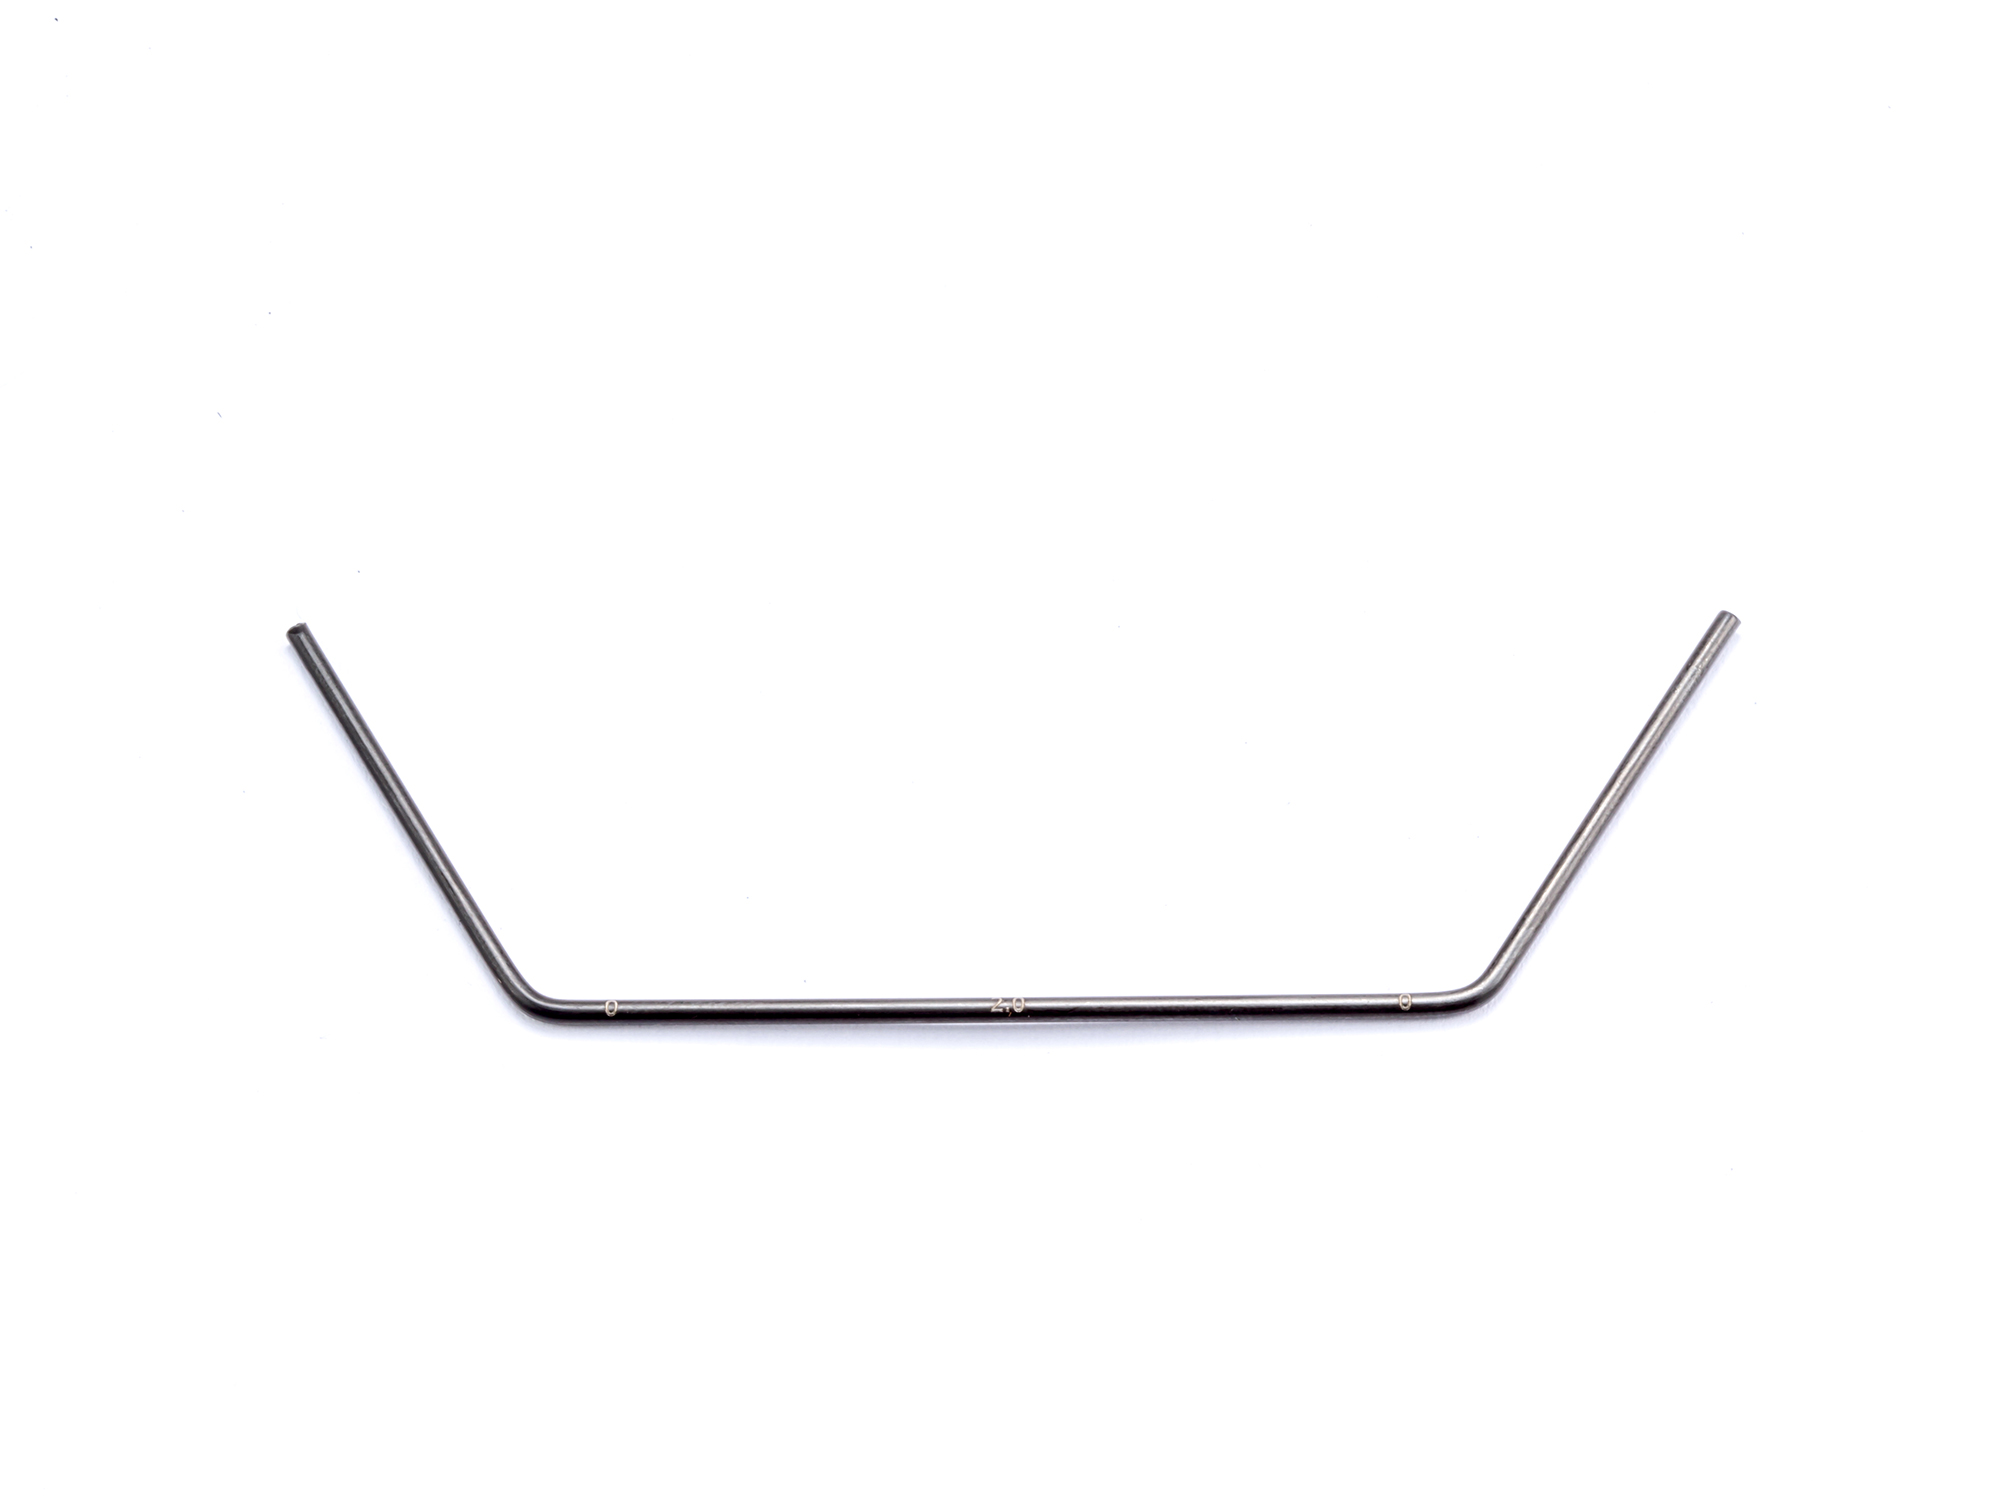 [R0304-2.0] FRONT ANTI-ROLL BAR 2.0mm(IF18-2)